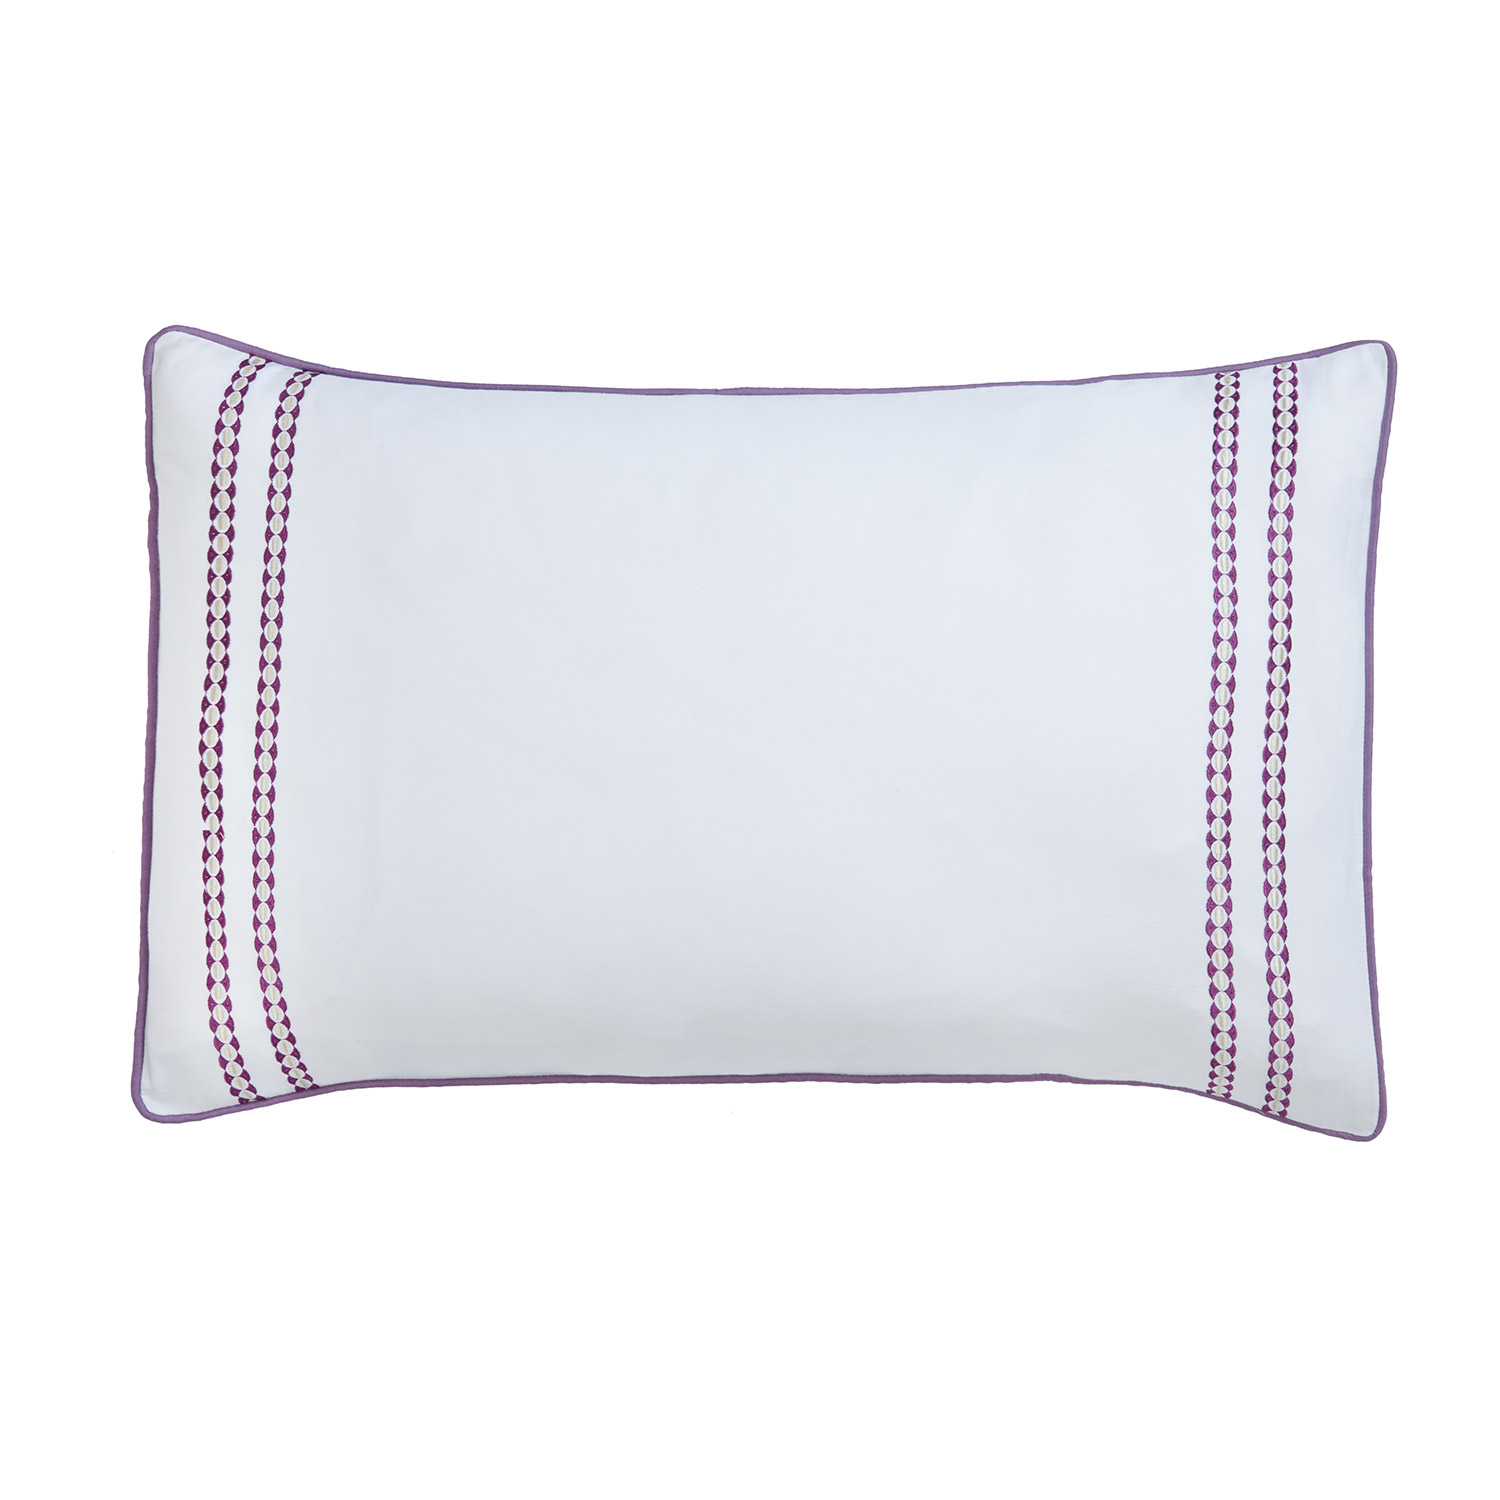 Stockists of Abigail Plum Pure Cotton Embroidered Housewife Pillow Cases (Pair)